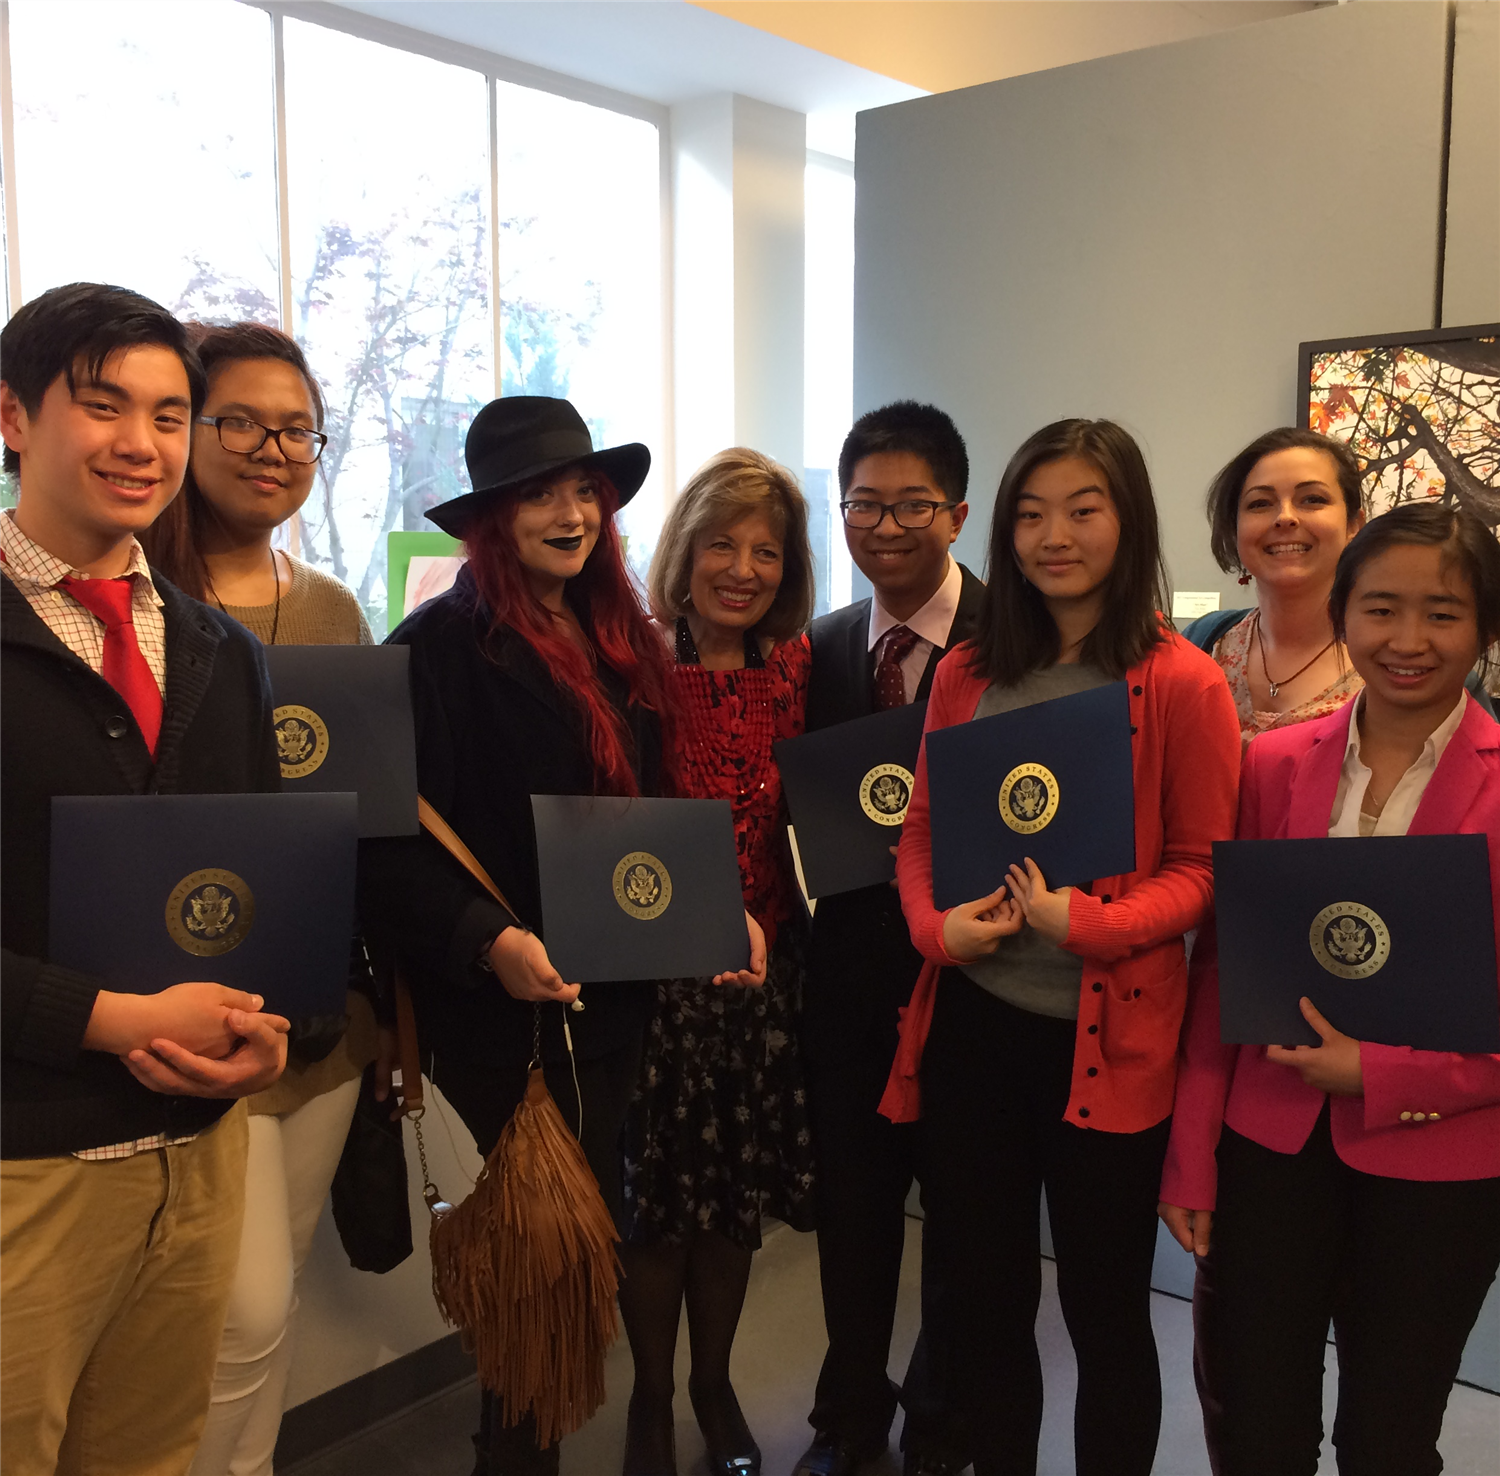 JHS Art Students Receive Congressional Certificate